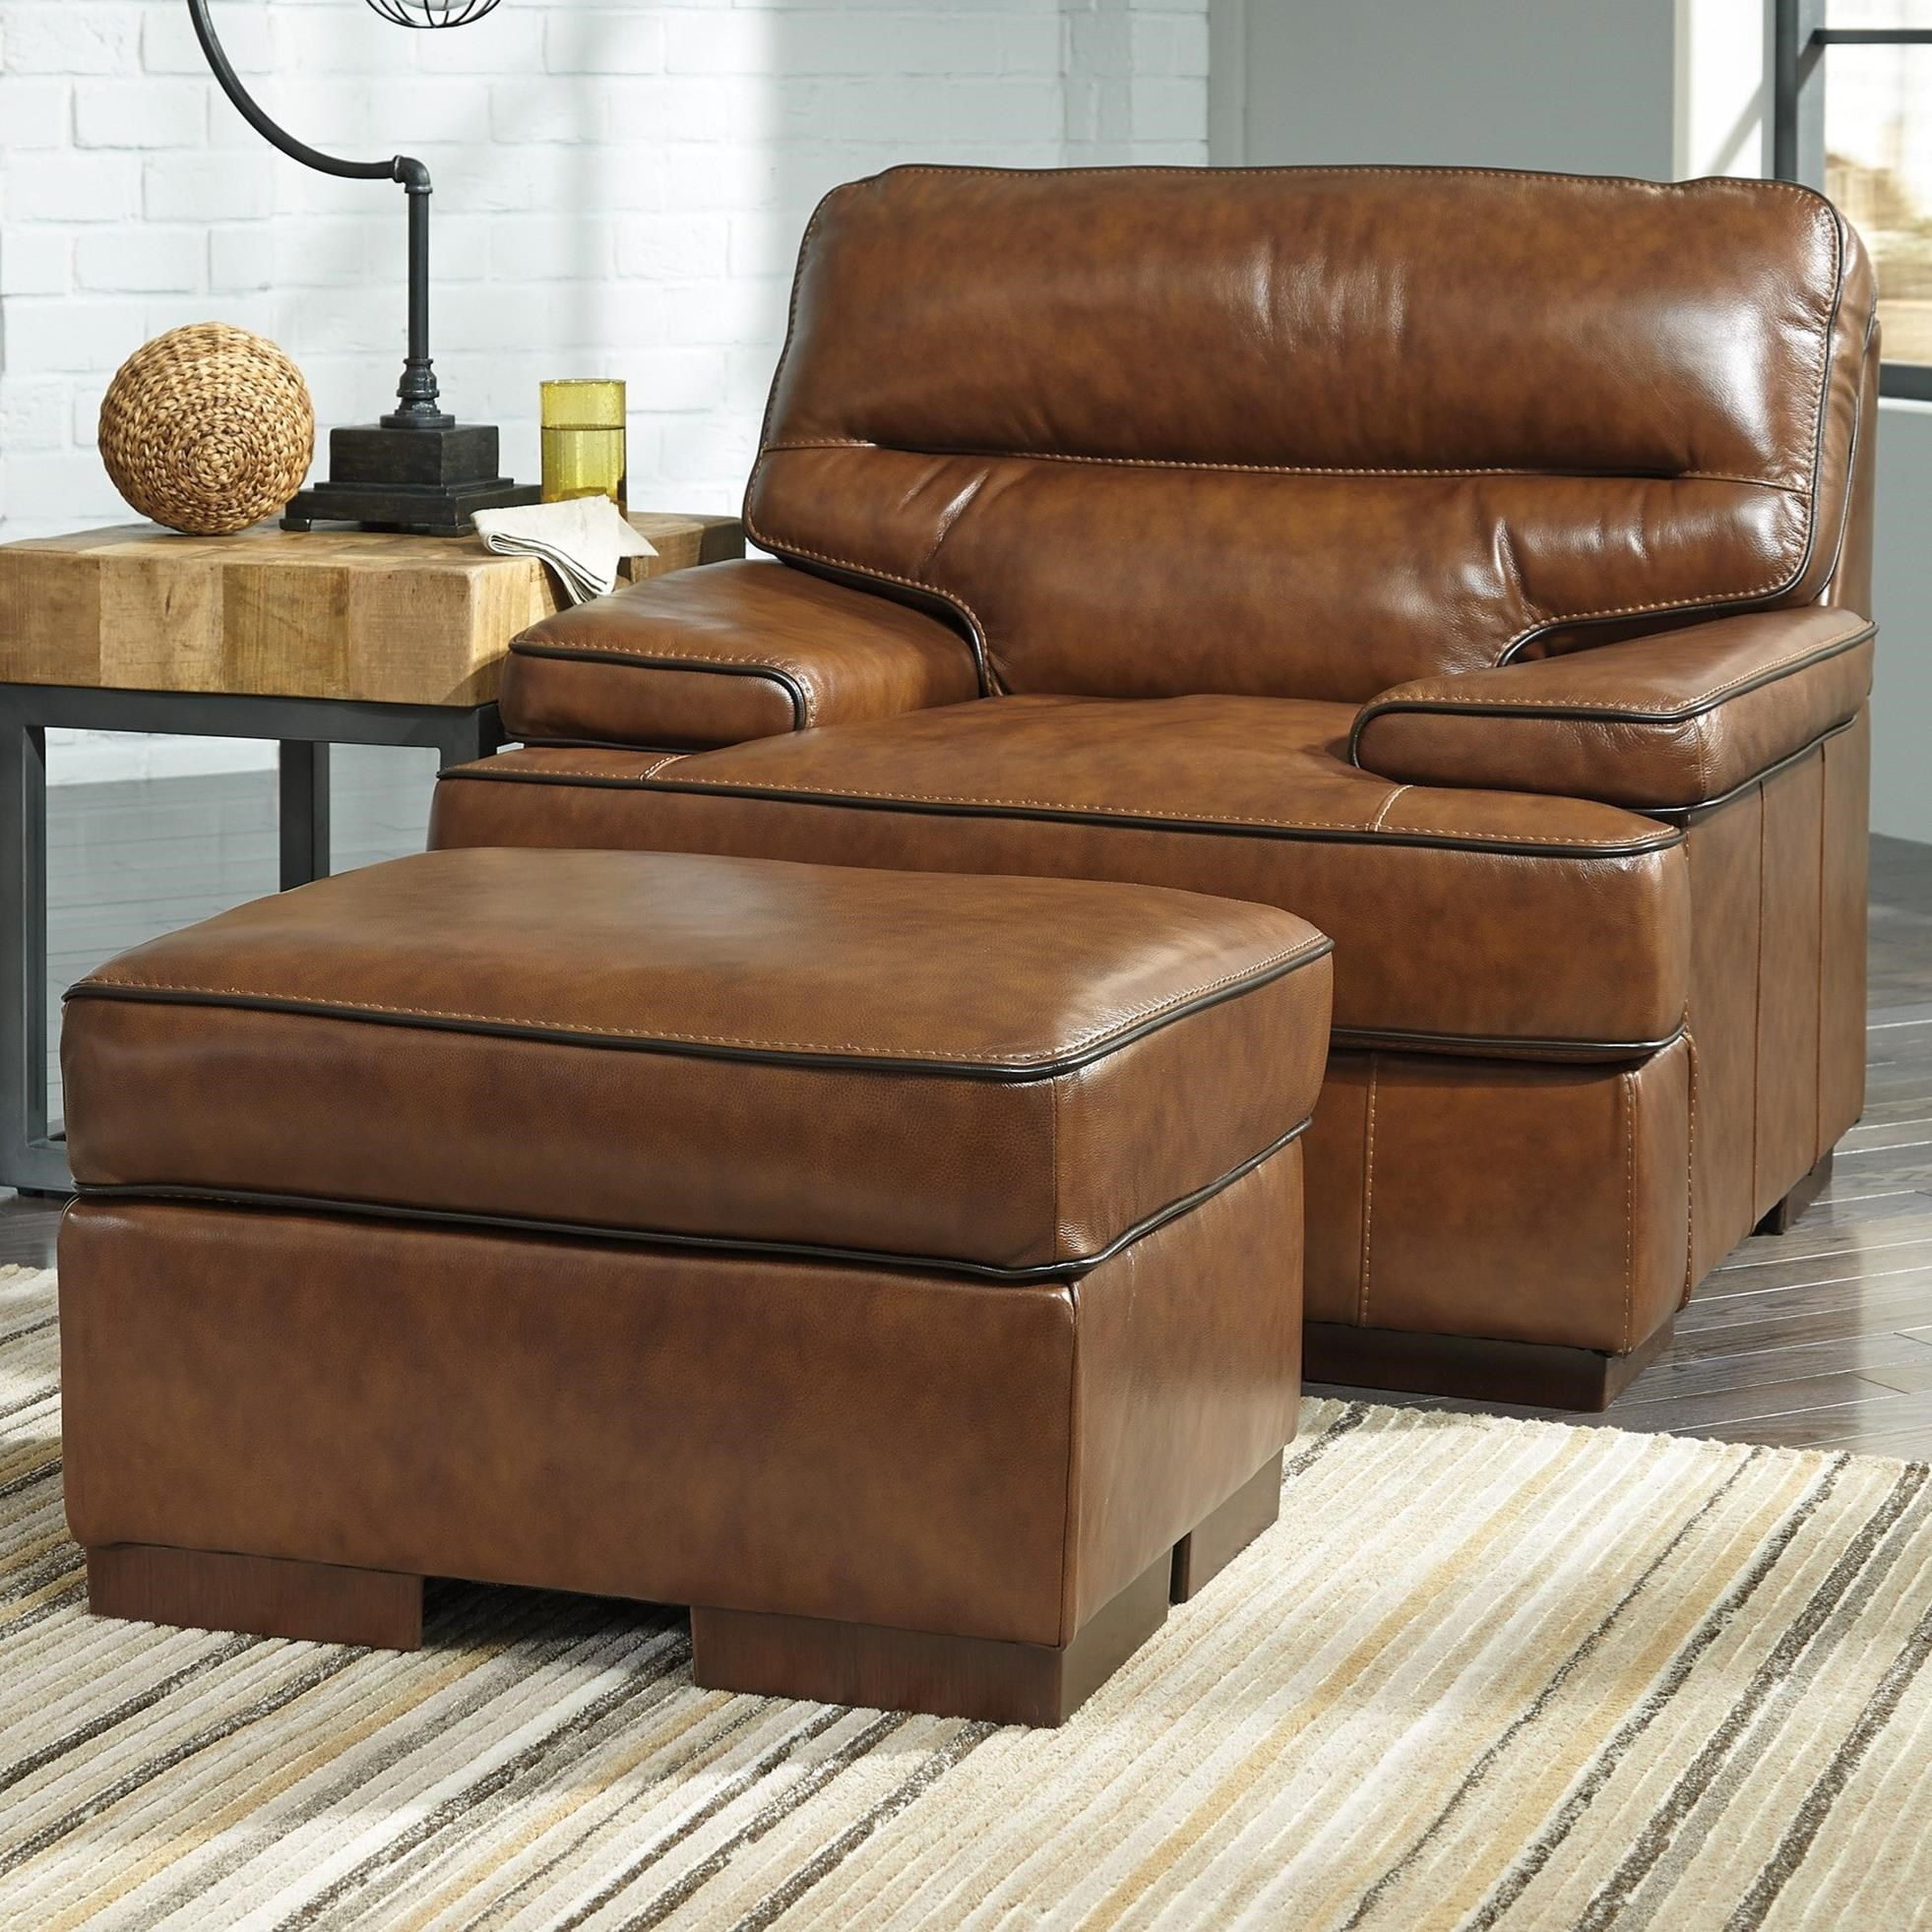 Signature Design By Ashley Palner Contemporary Leather Match Chair Ottoman Household